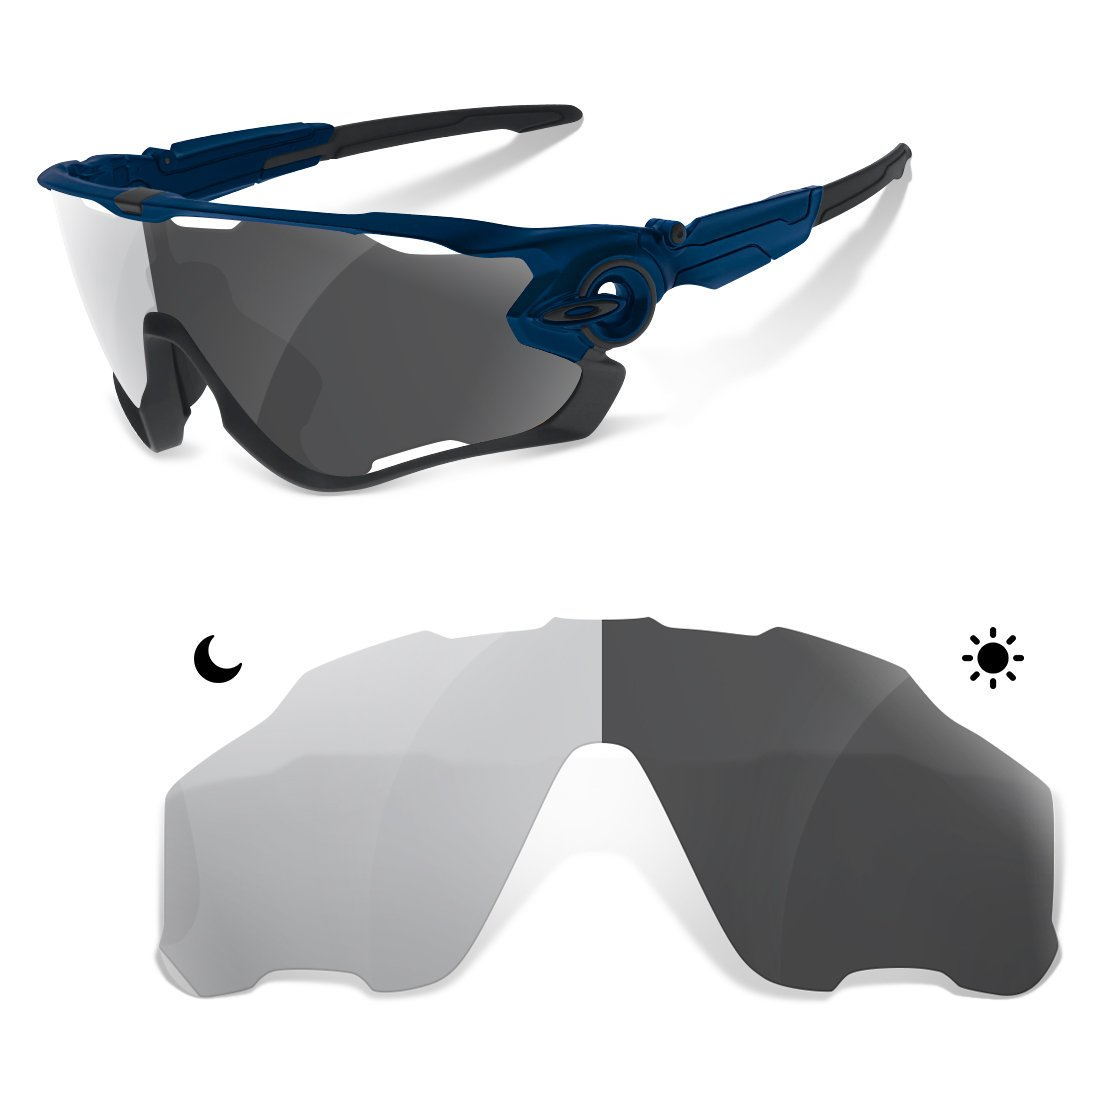 5d88c2575ea Polarized Photochromic Grey Replacement Lenses for Oakley Jawbreaker (15% -  35%)  Amazon.ca  Sports   Outdoors